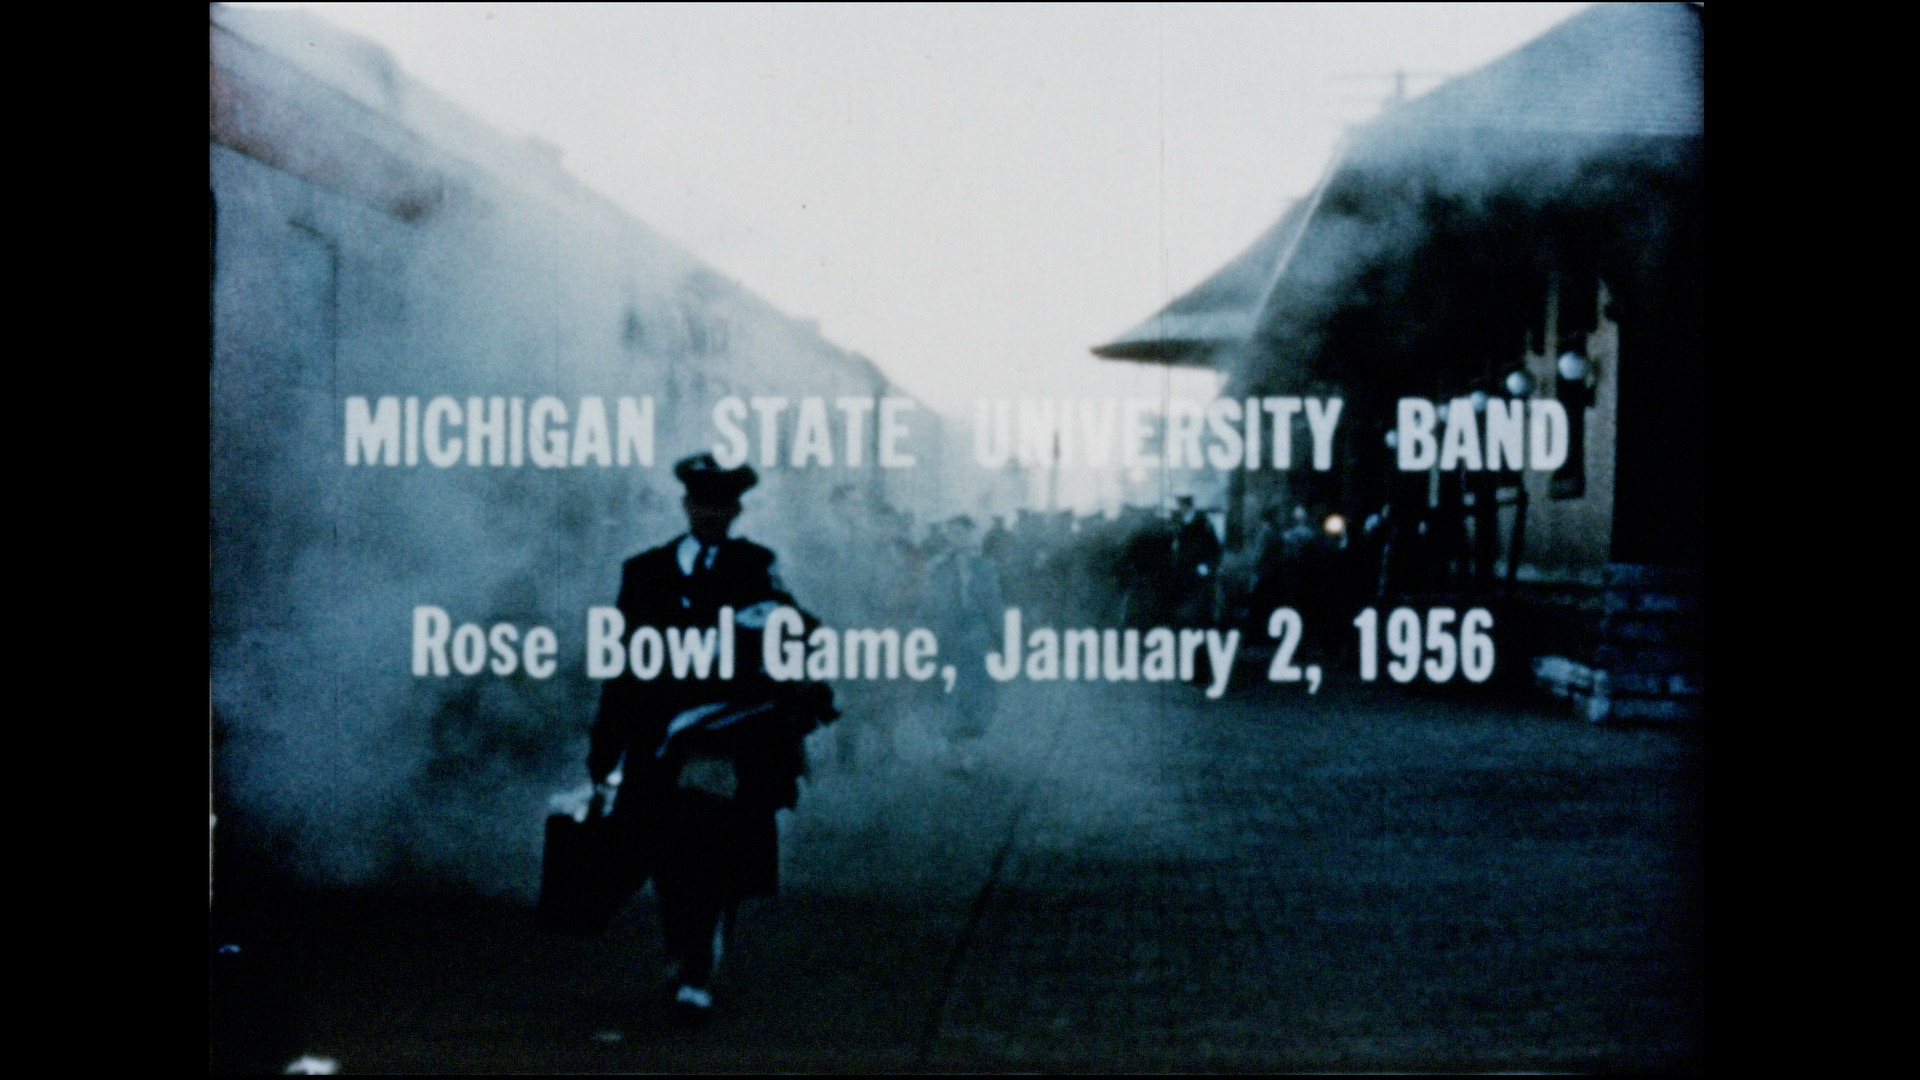 Michigan State University Band: Rose Bowl, 1956